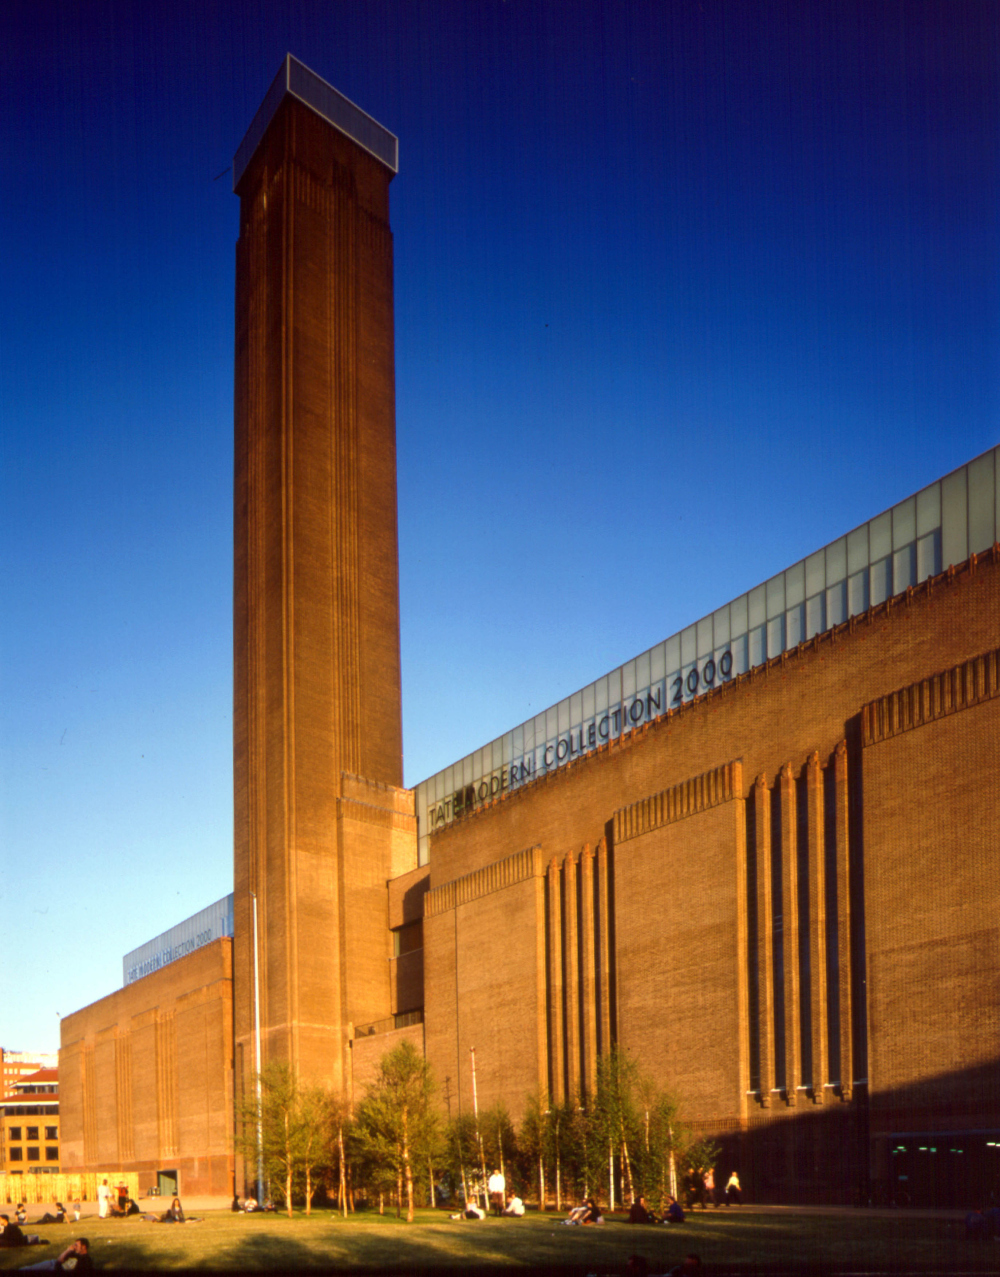 Get lost in Tate Modern